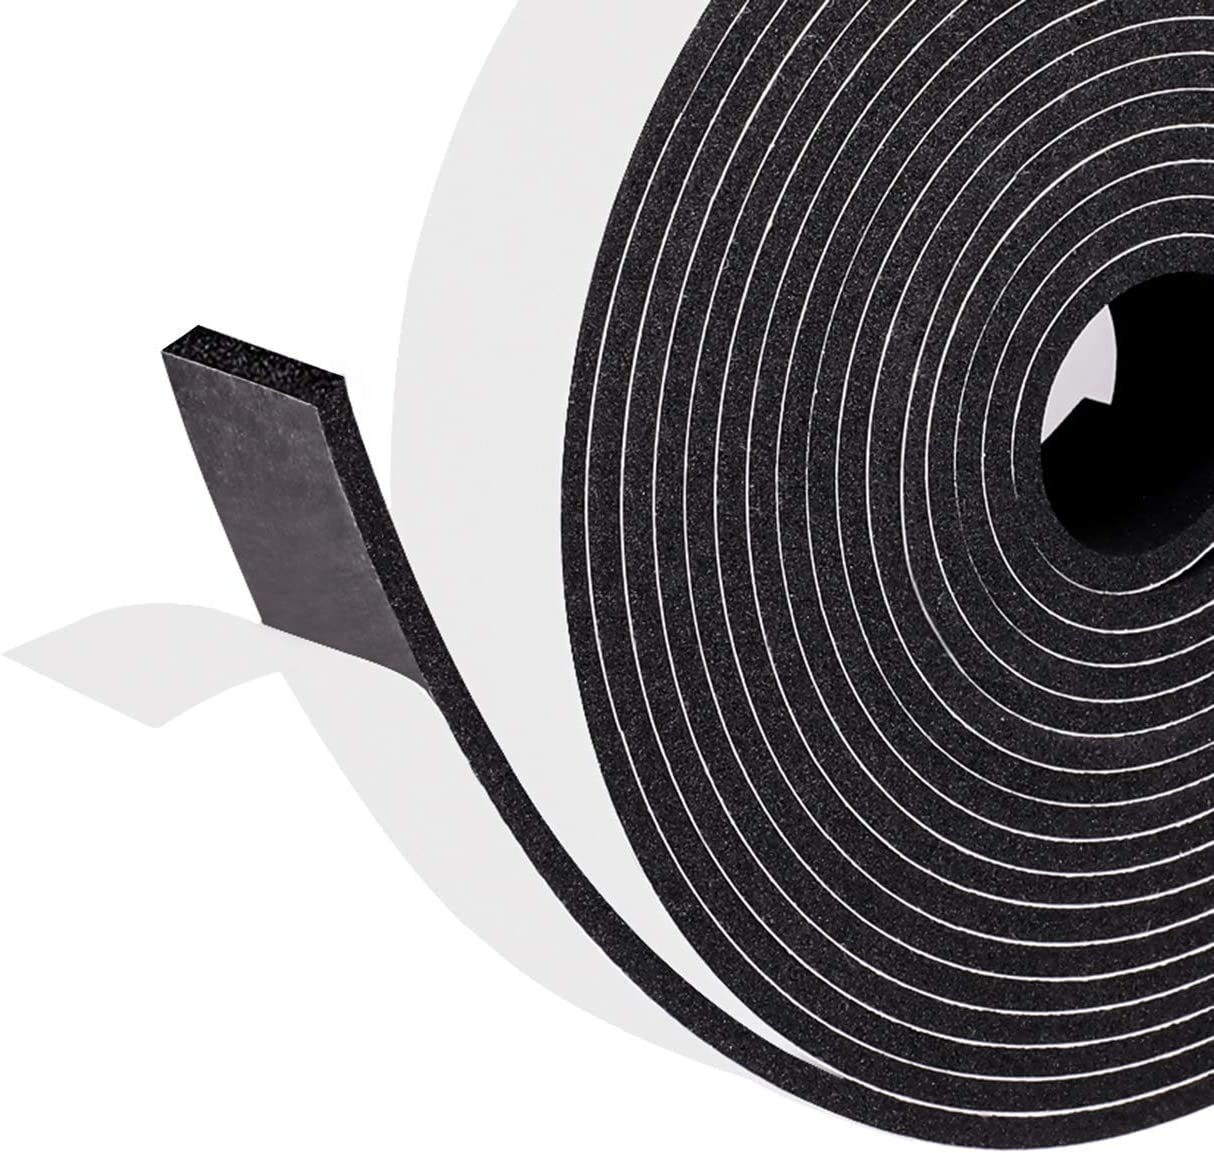 """Window Insulation Door Jamb Gasket Foam Strips Tape for Soundproofing and Insulation,1"""" W X 1/8"""" T X 32' L, 16ft X 2 Rolls Total 32ft"""